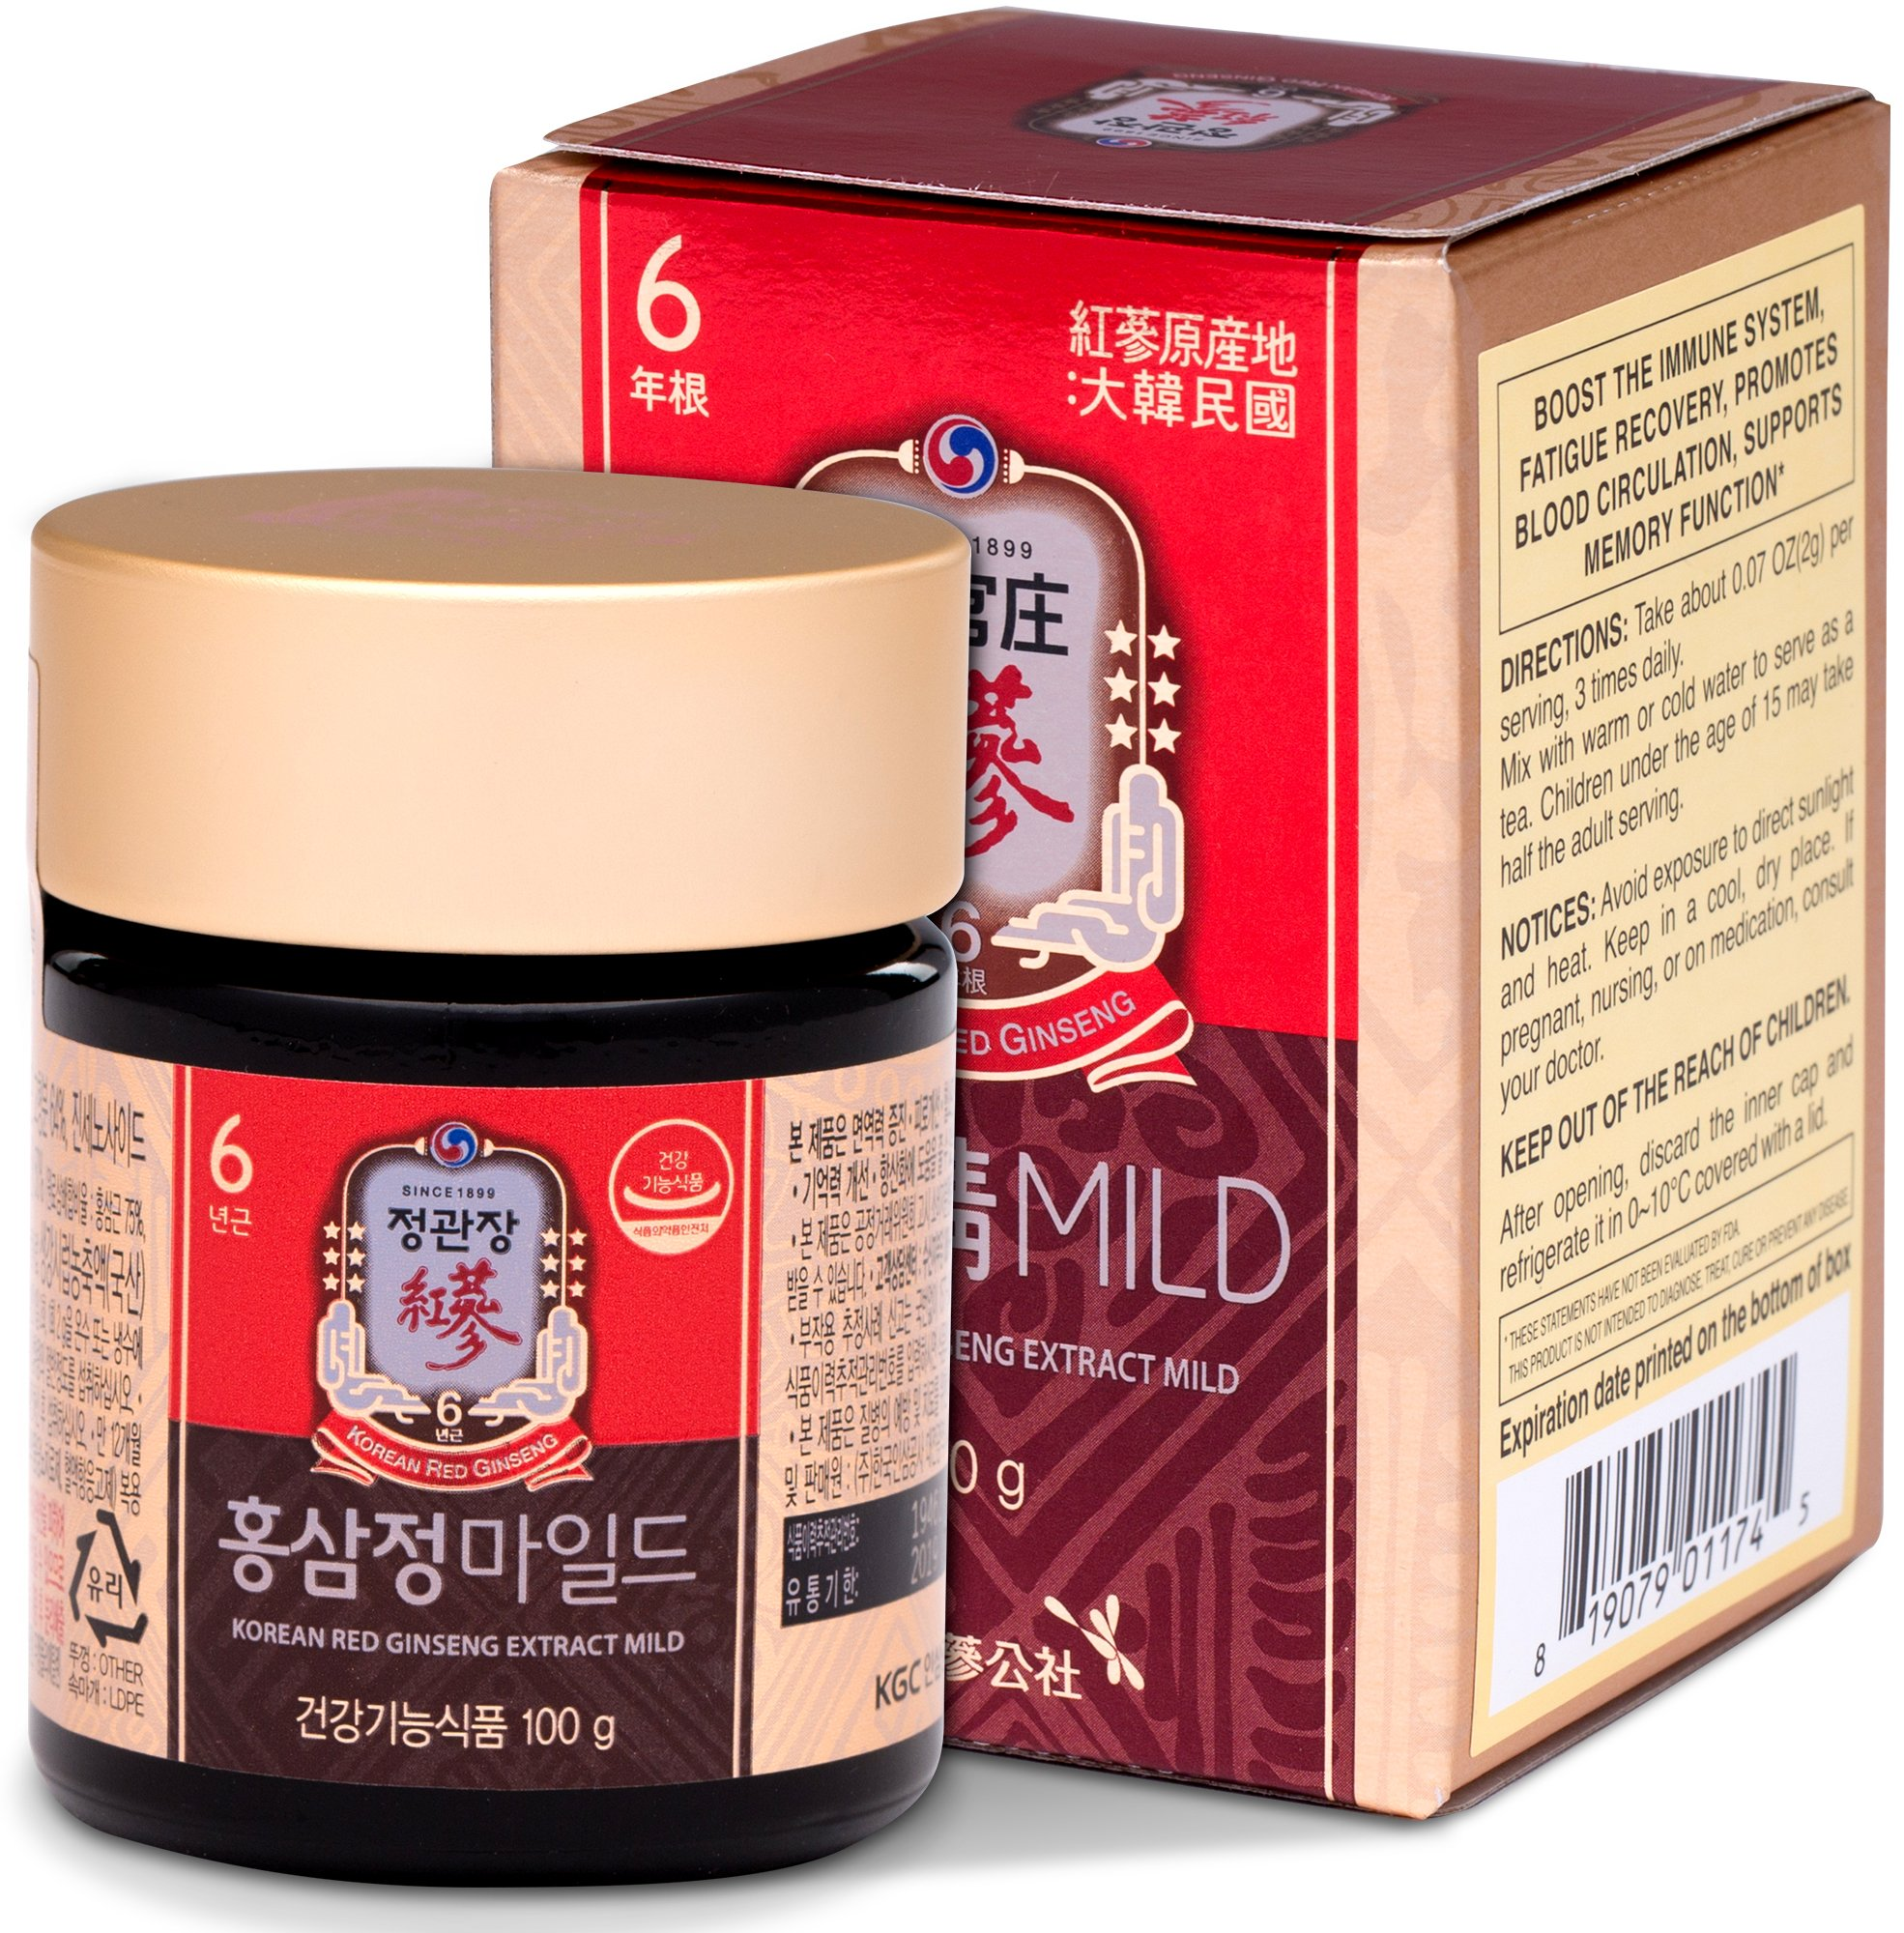 KGC Korean Panax Red Ginseng Concentrated Extract for Tea (Mild Formula with Real Honey) - Immune System Booster, Natural Energy Stamina, Antioxidants Healthy Memory Function, Blood Circulation